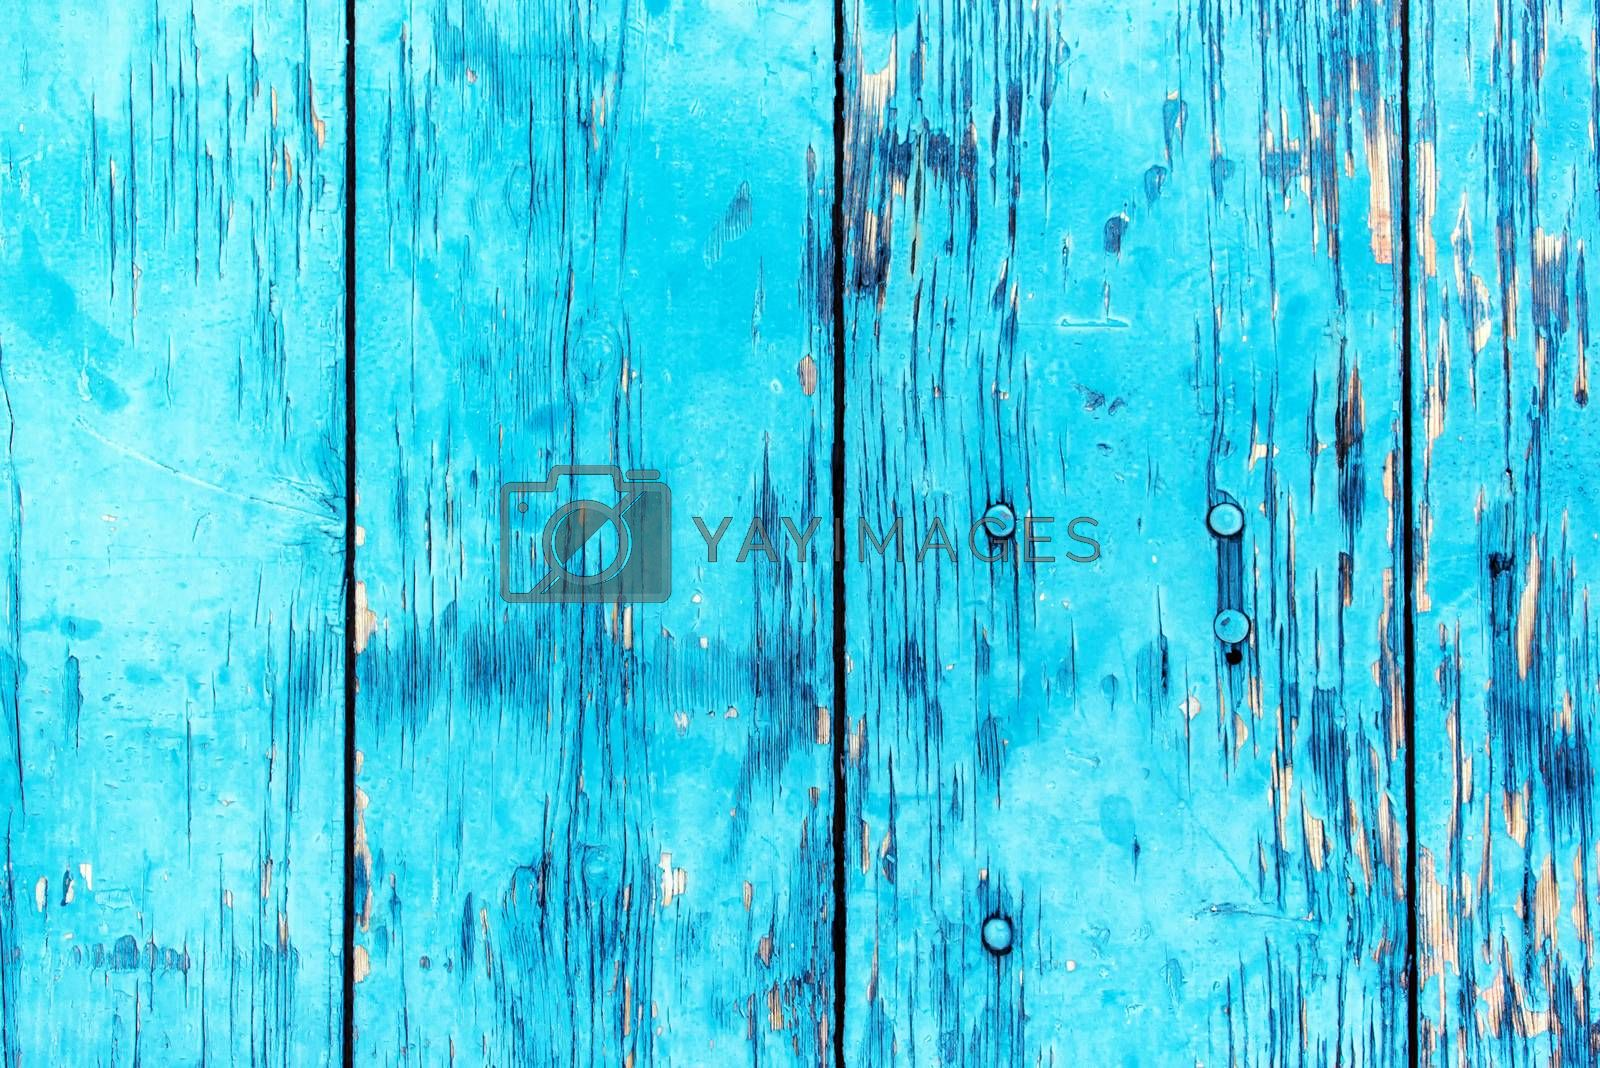 Blue planks background, abstract texture of rustic wooden boards